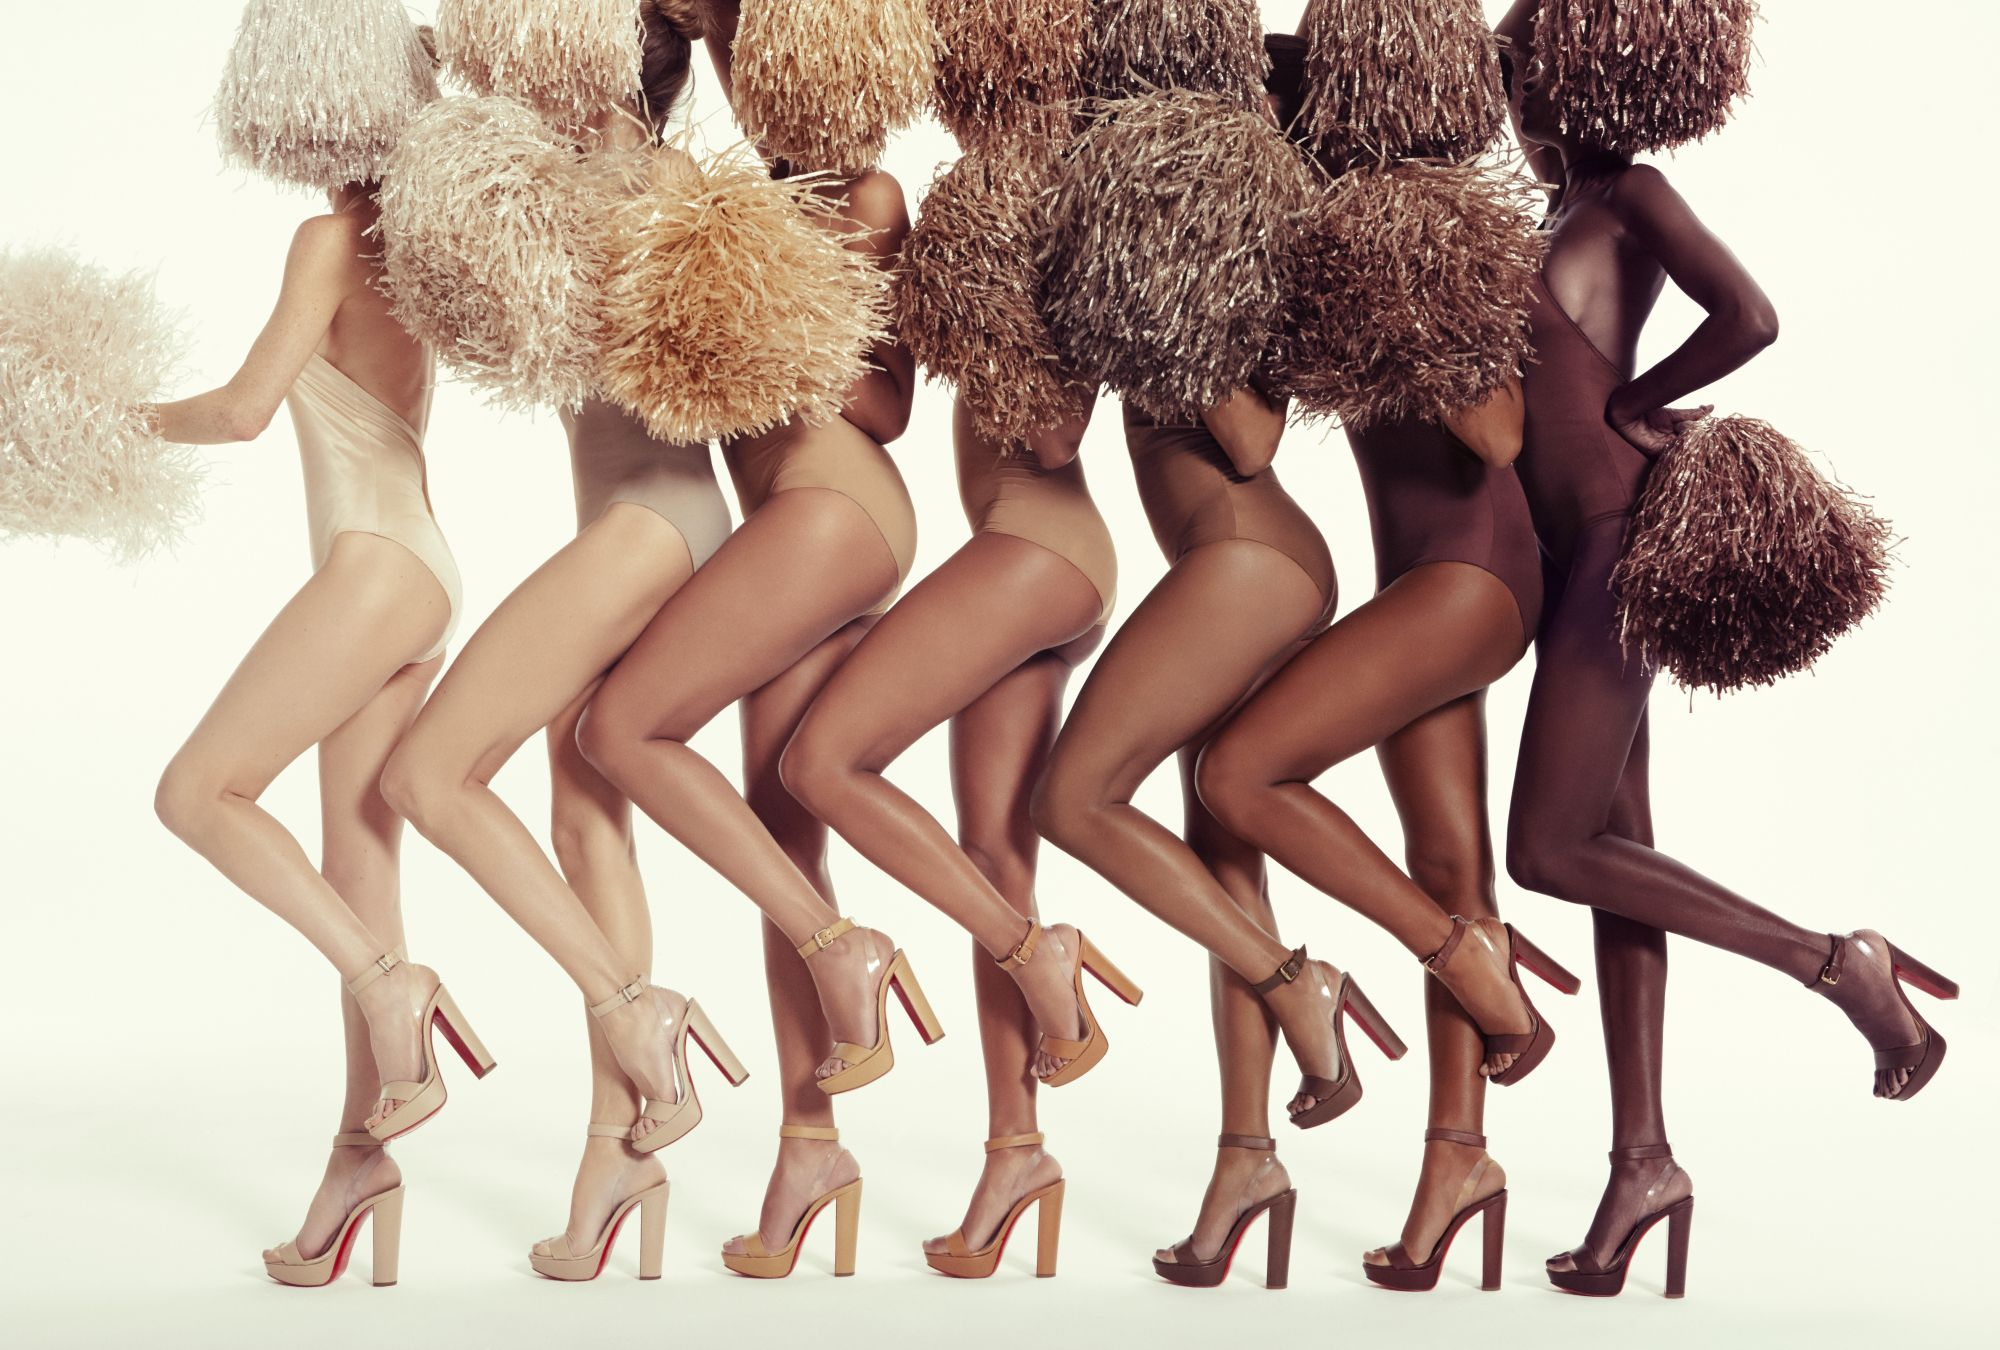 Christian Louboutin Makes Nude Shoes For All Skin Tones